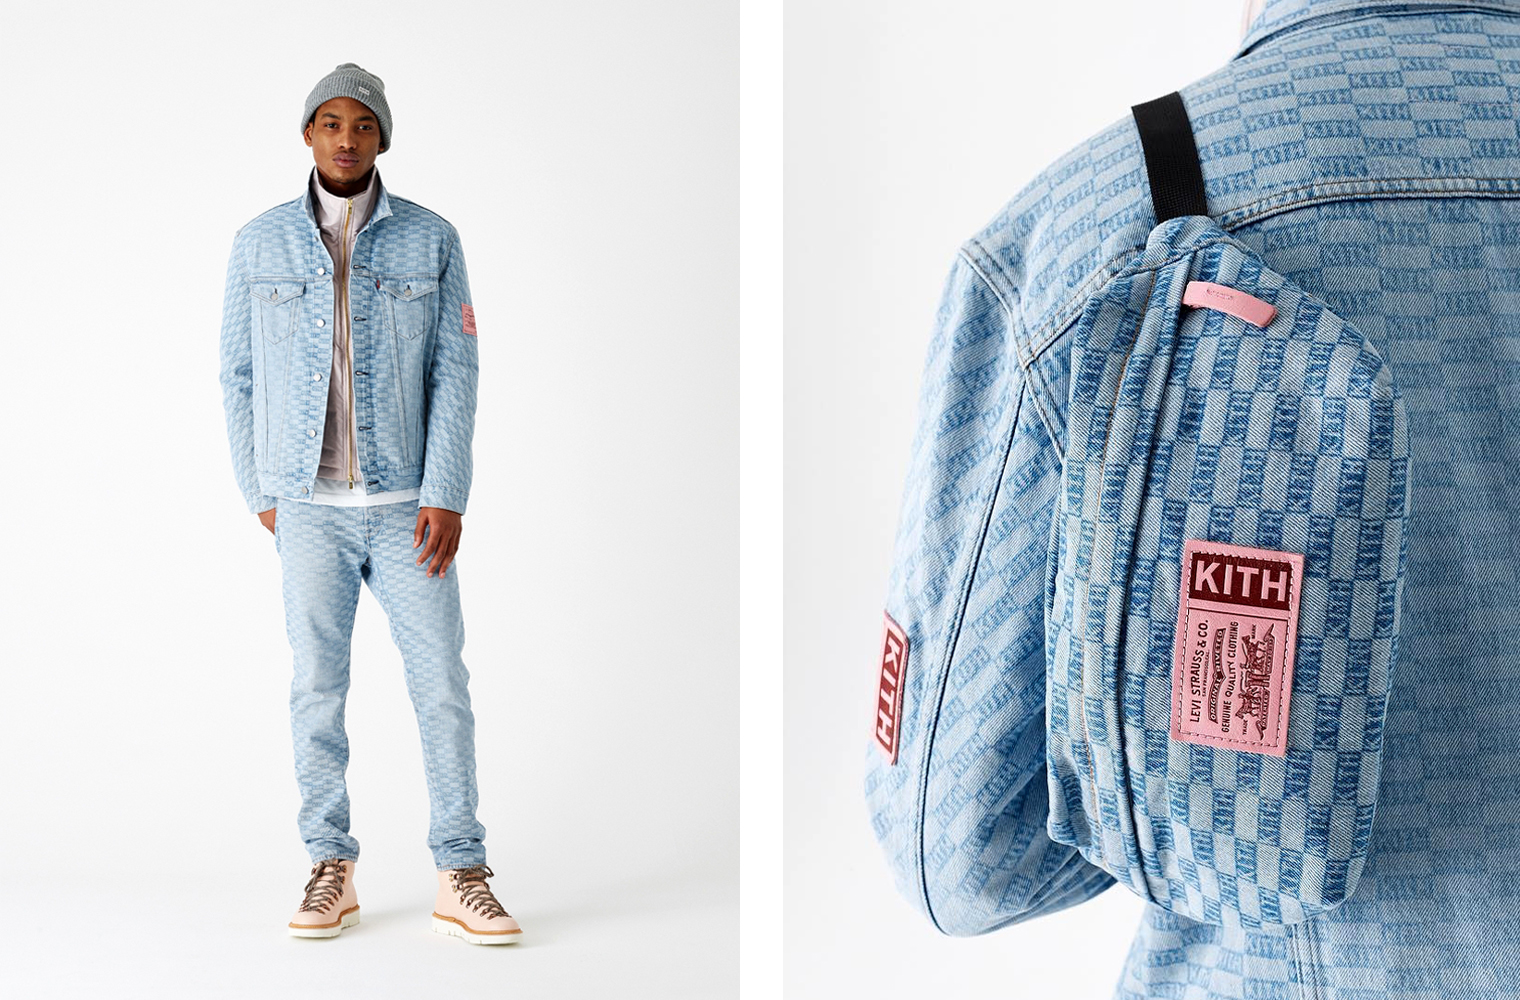 Kith x Levi's Fall/Winter 2018